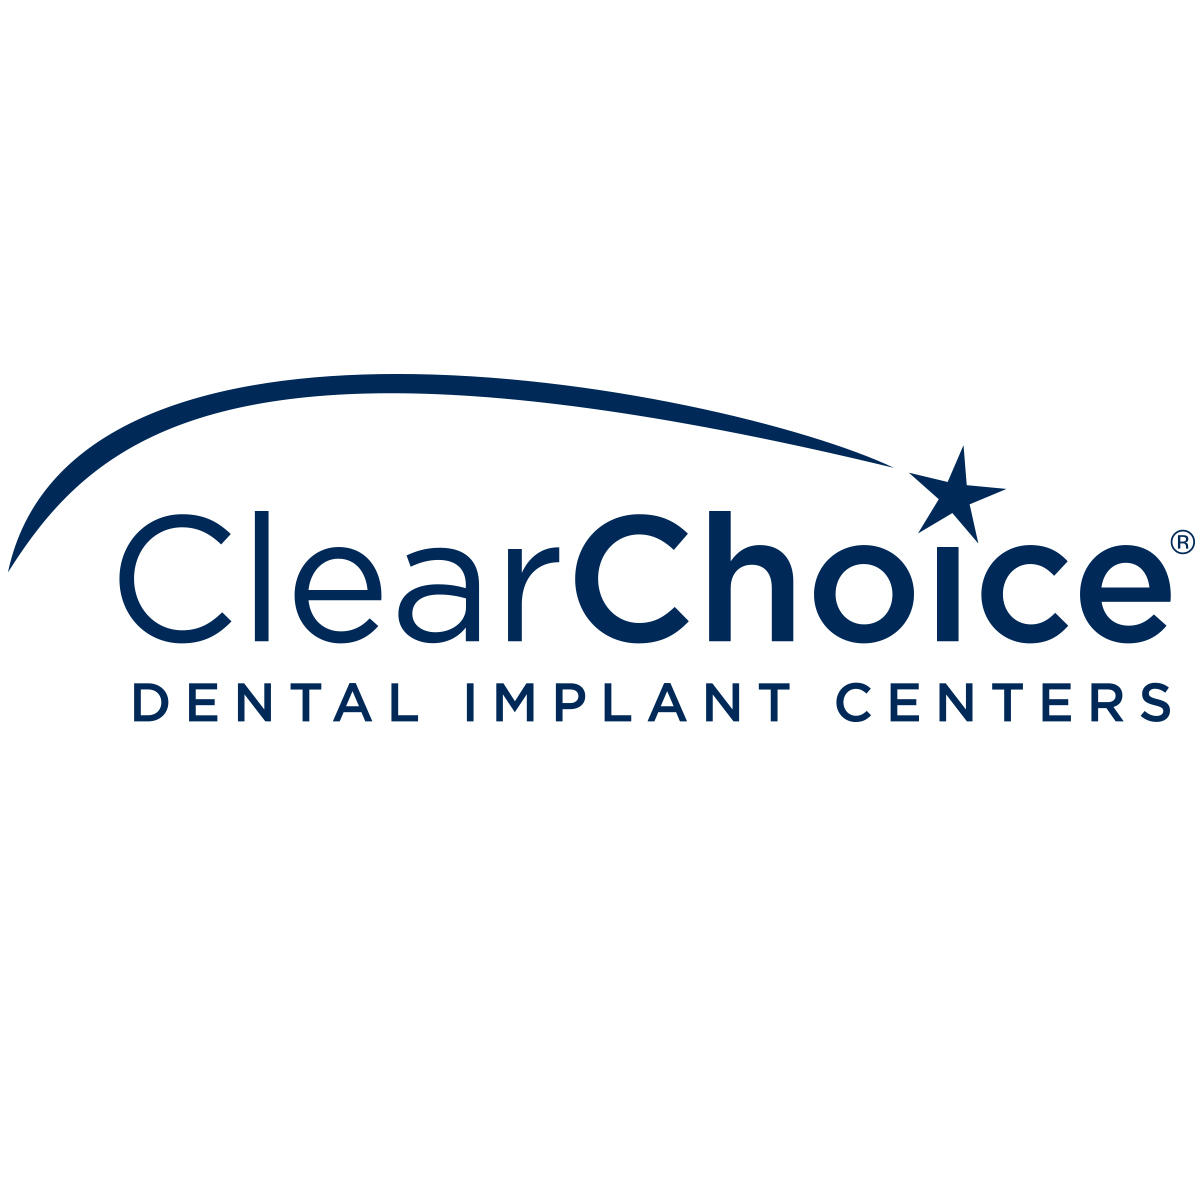 ClearChoice Dental Implant Center - Vienna, VA 22182 - (571)765-3157 | ShowMeLocal.com